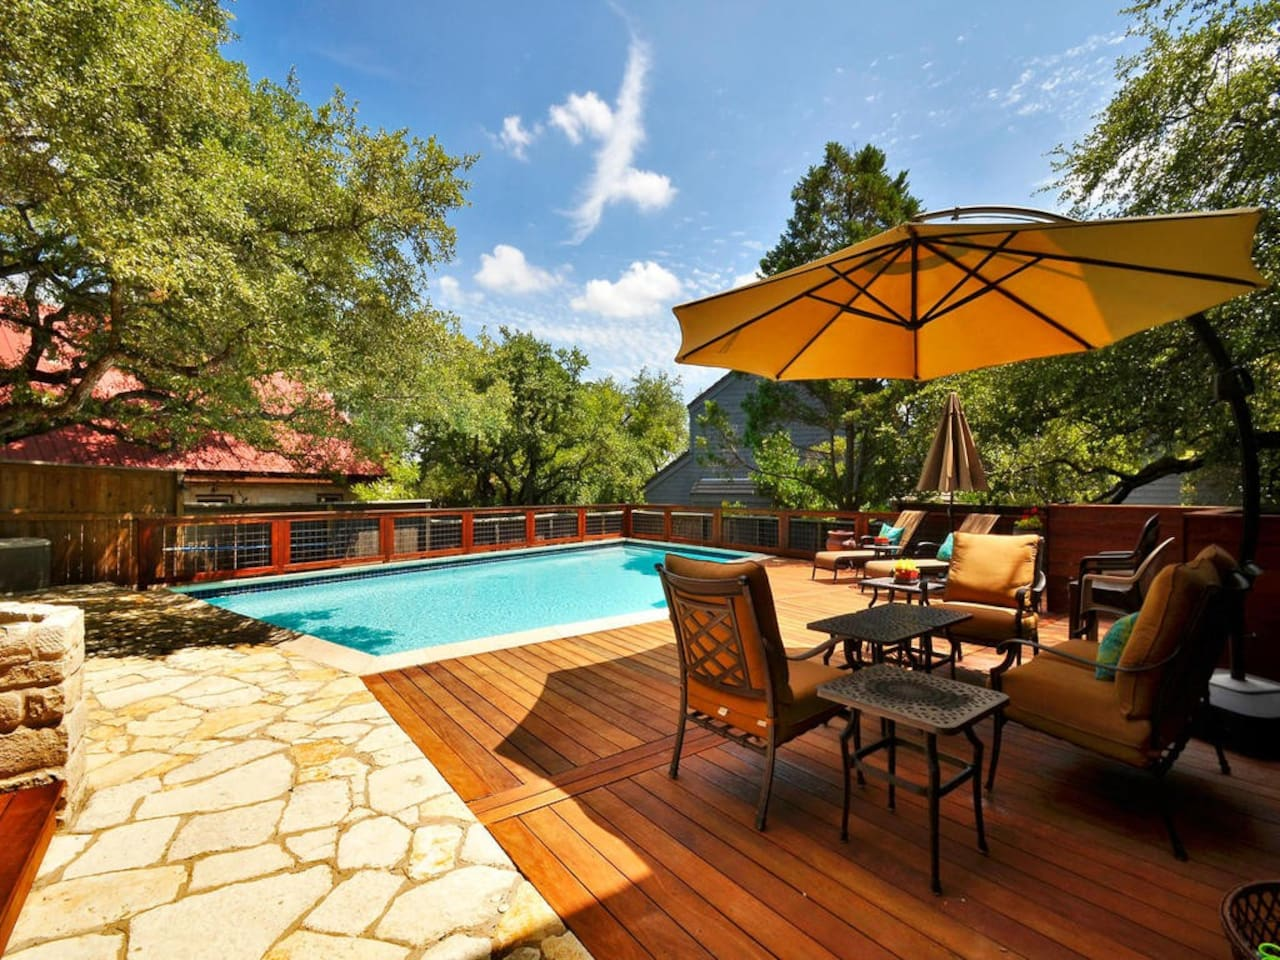 Large outdoor patio with outdoor dining, lounging and grill.